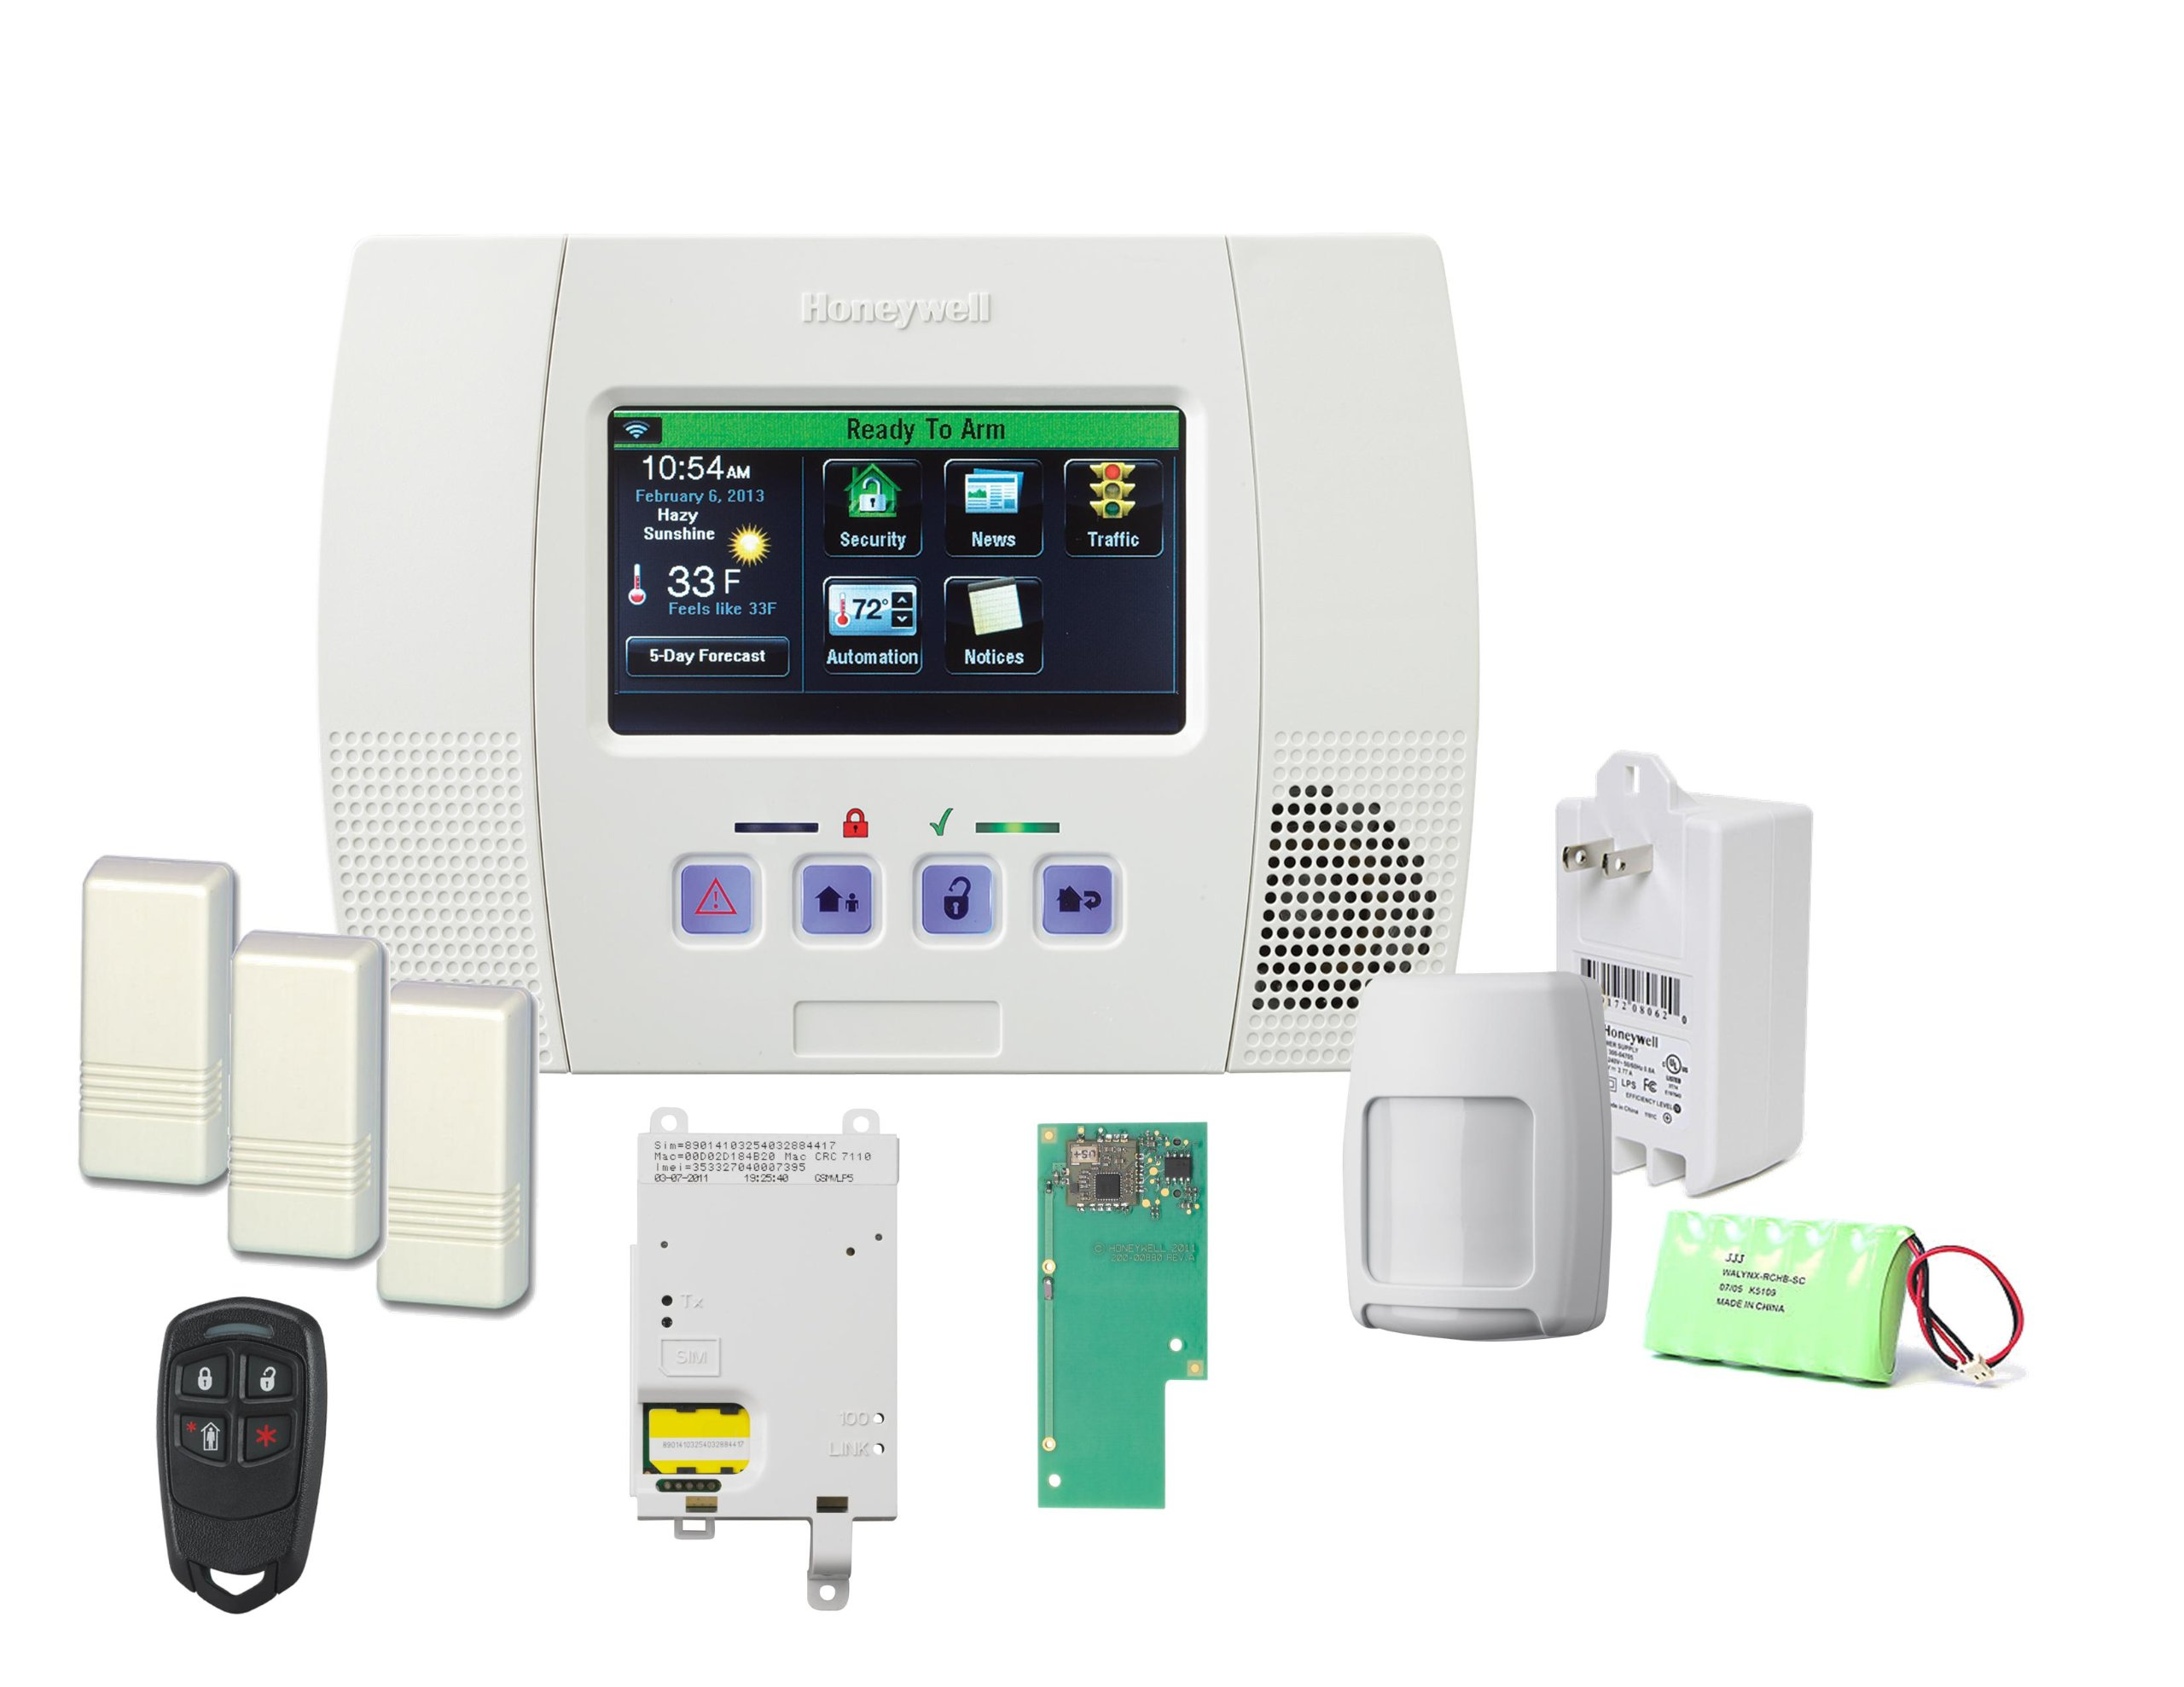 Honeywell Lynx Touch 5100 Wireless Alarm GSMVLP5-4G and Zwave Home Automation Starter Kit